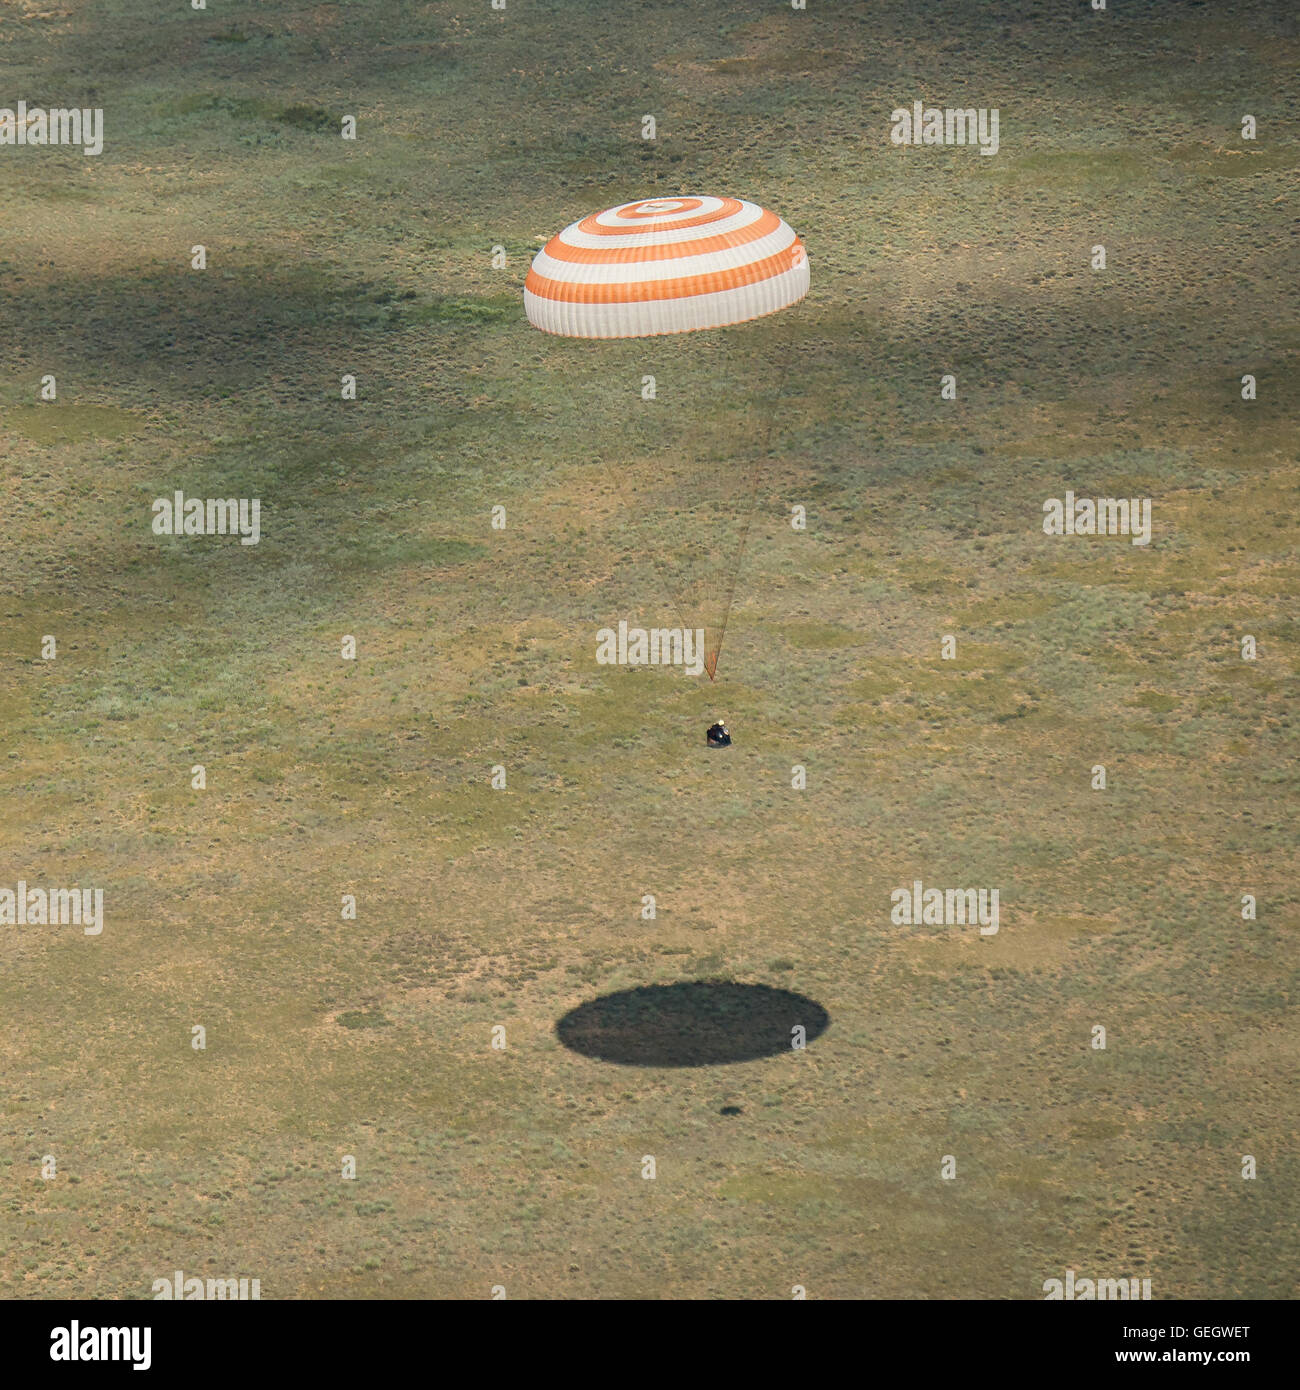 Expedition 47 Soyuz TMA-19M Landing  06180008 - Stock Image